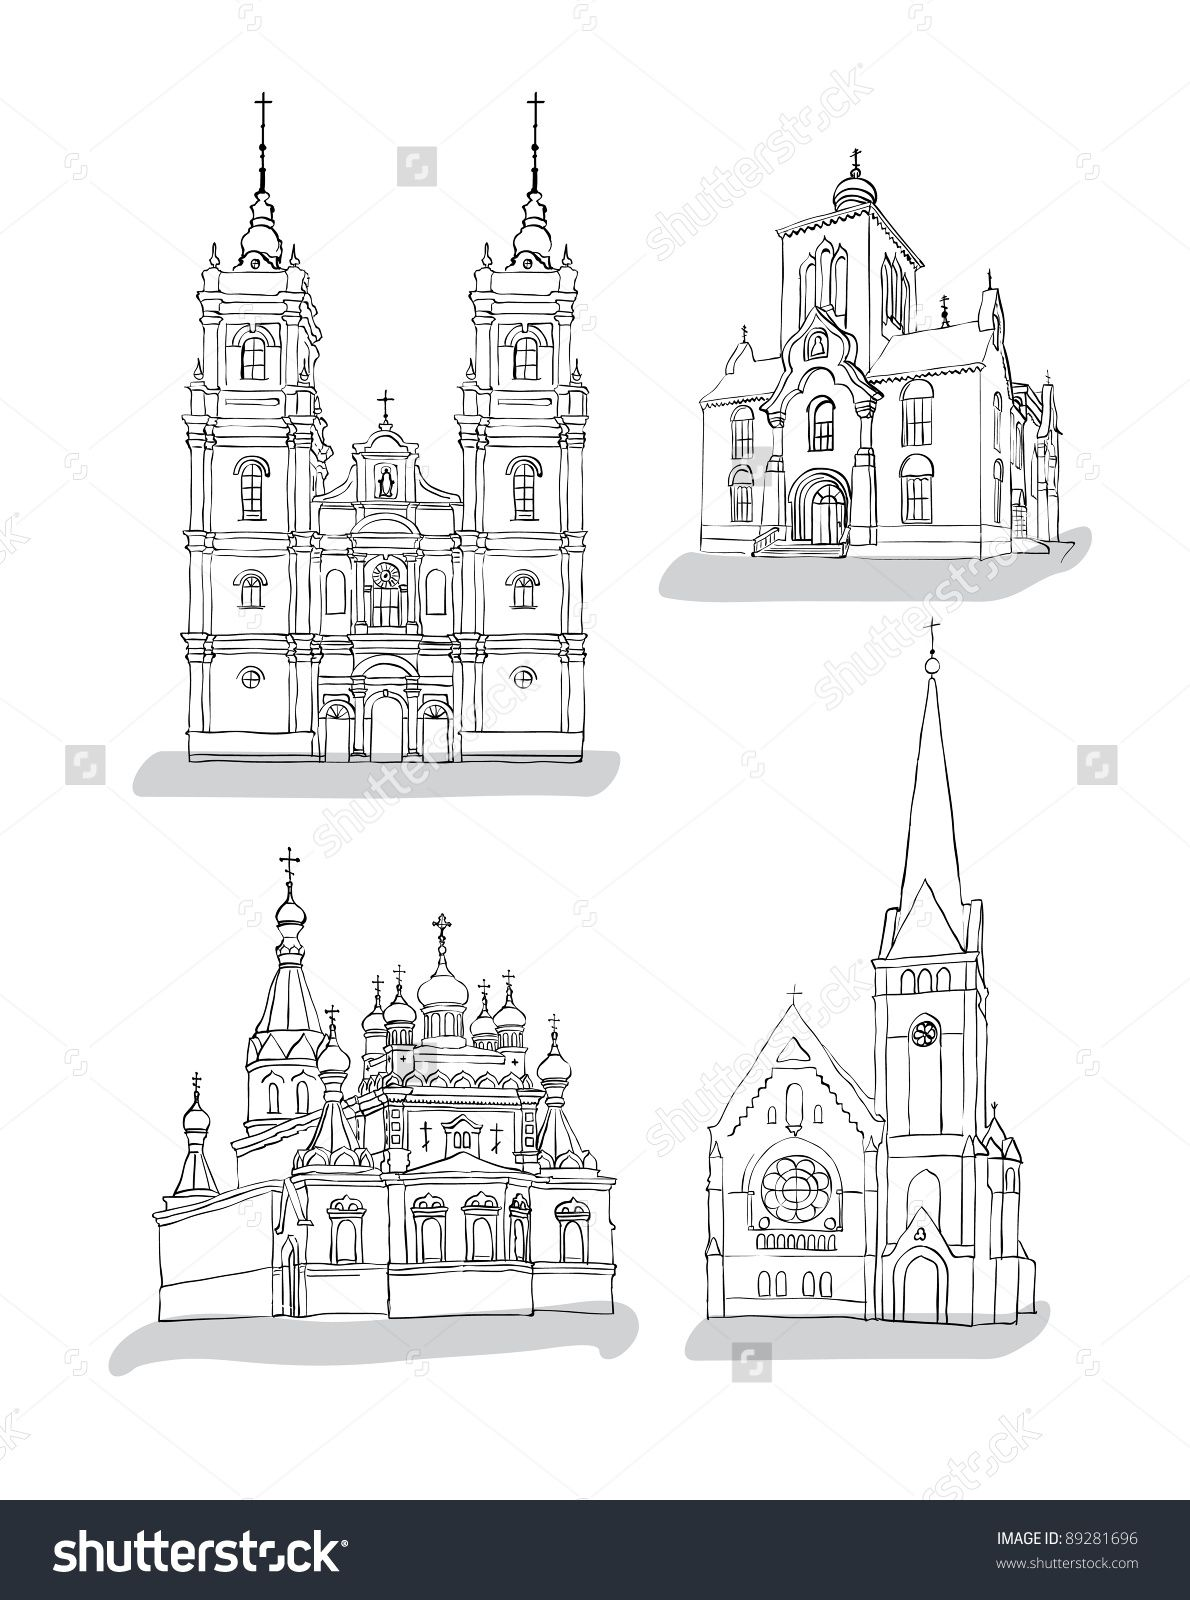 A set of sketches of churches hand drawn vector illustration